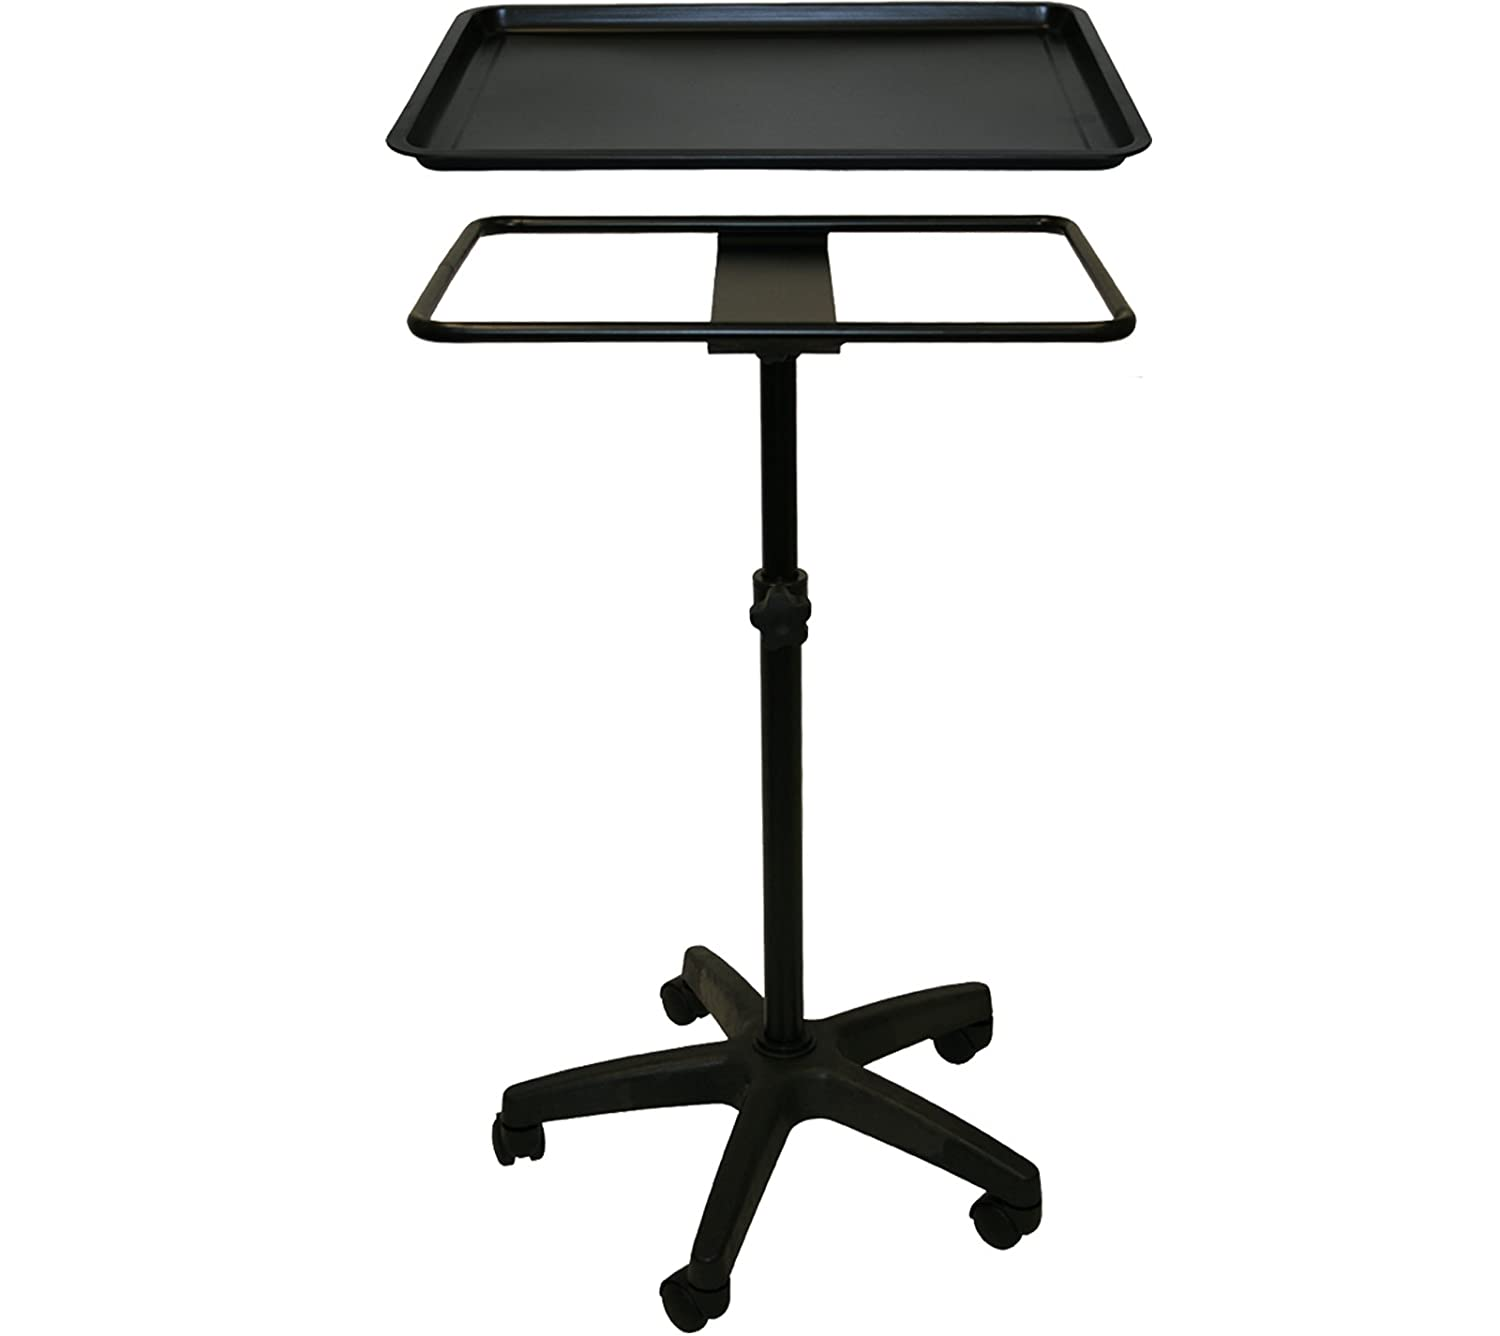 B00QSFL730 InkBed Extra Large Black Steel Single-Post Mayo Instrument Stand with Lift Out Work Tray Tattoo Salon Spa 41FXuvG2GkL